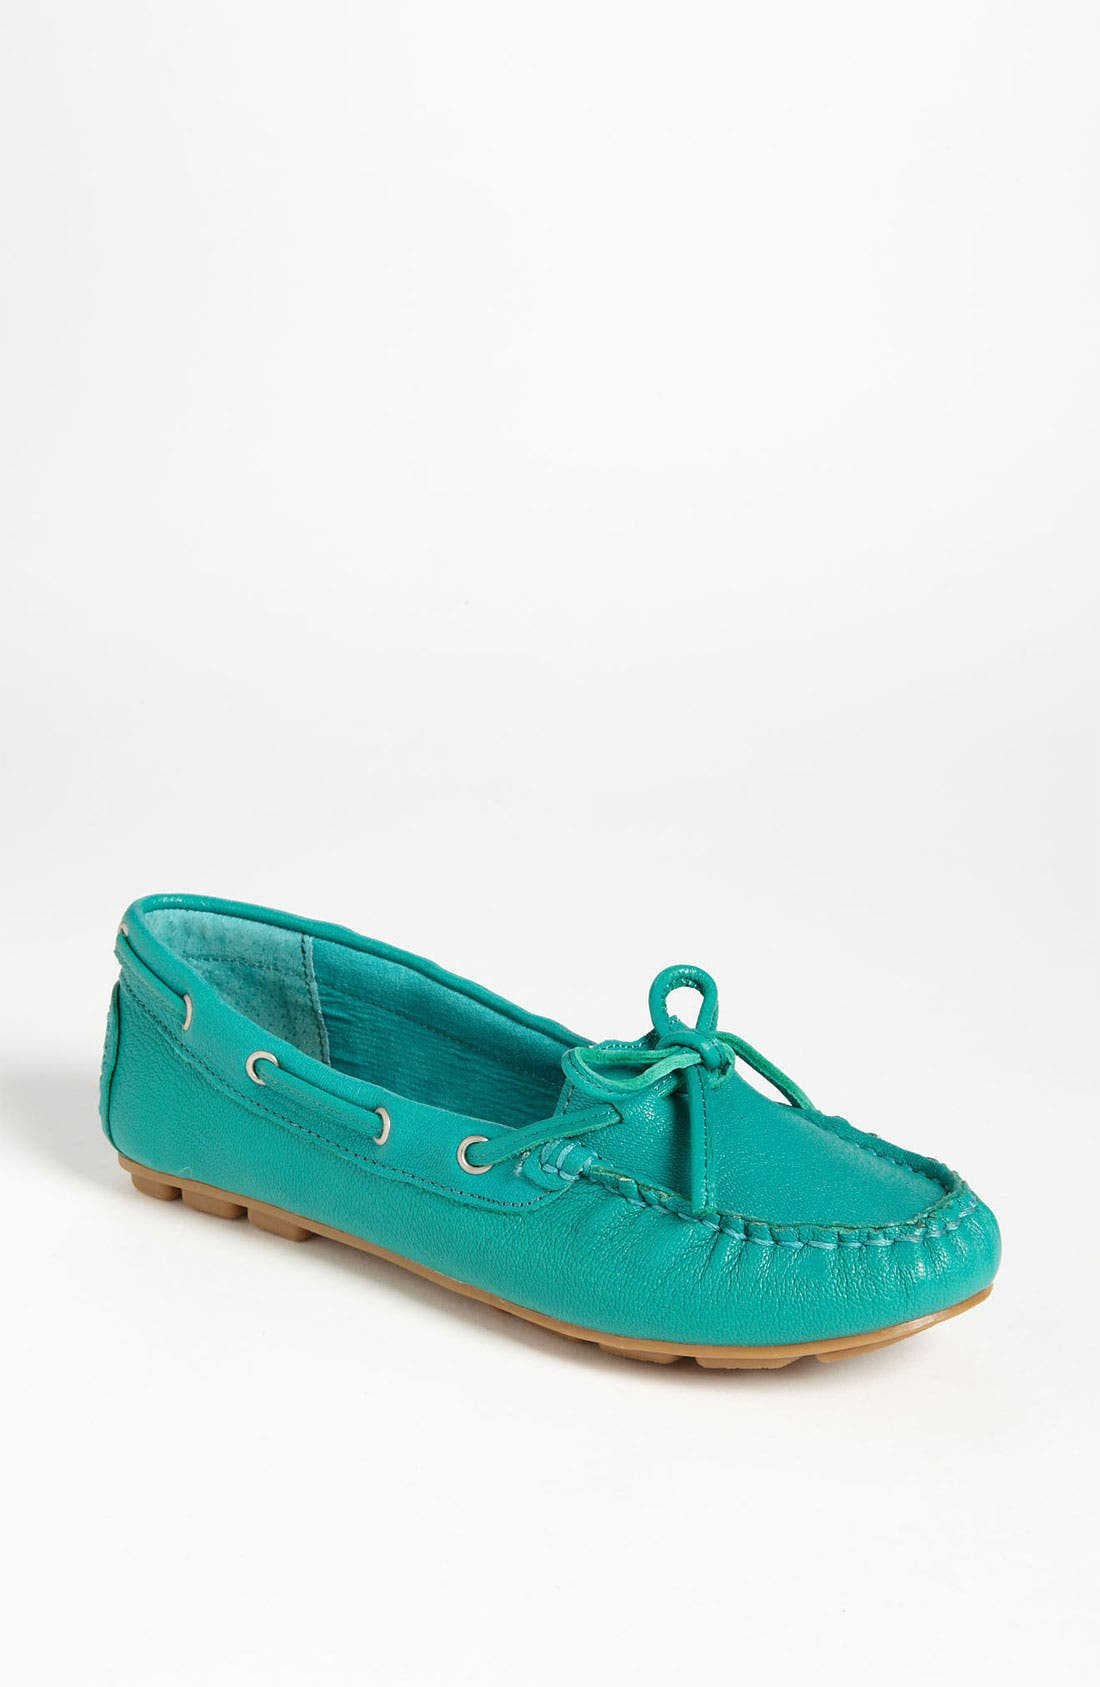 Alternate Image 1 Selected - Lucky Brand 'Darice' Moccasin